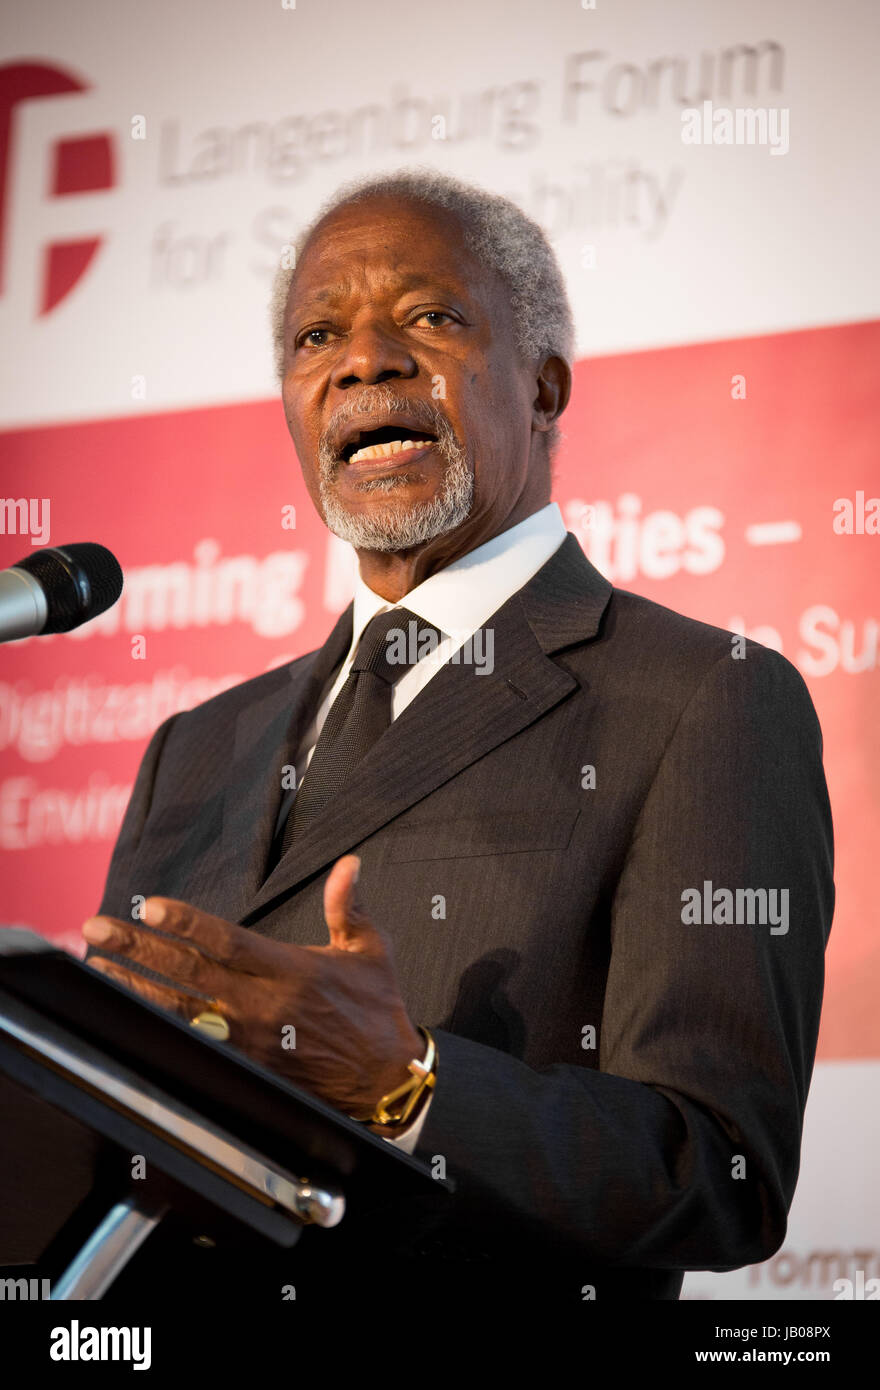 Kofi Annan, former secretary general of the United Nations, giving a speech at the  Langenburg Forum for Sustainability - Stock Image